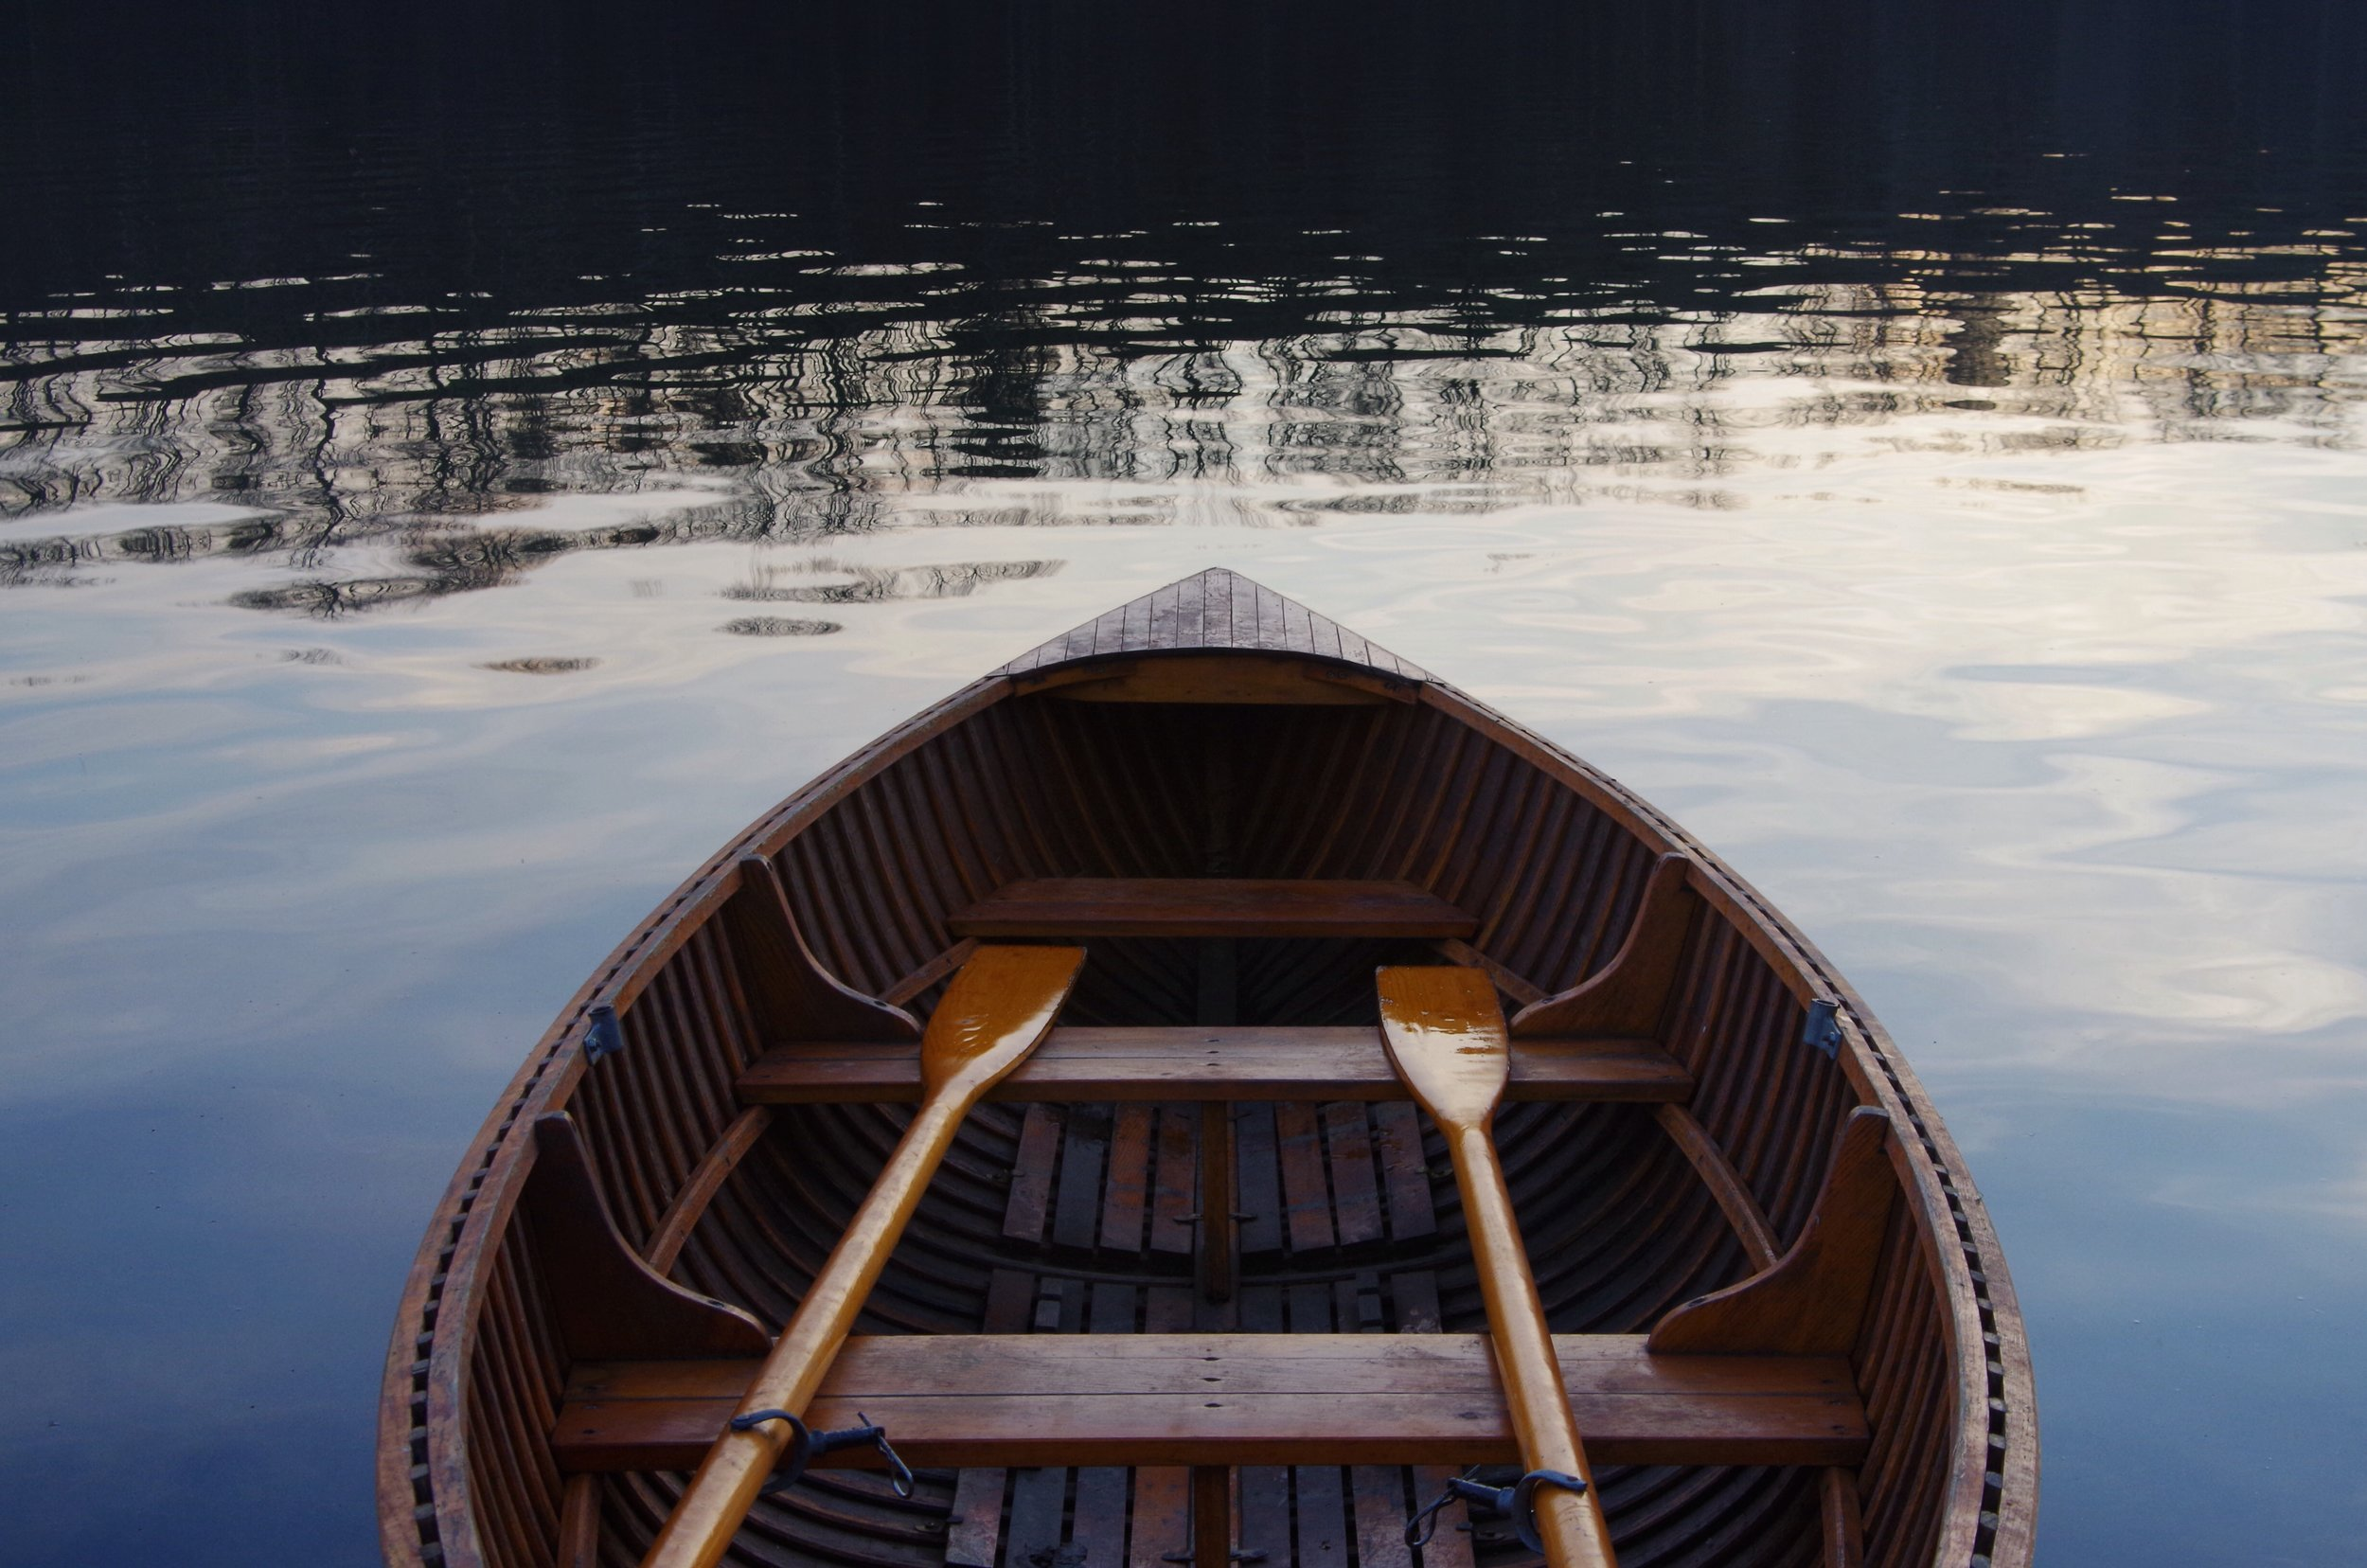 ROW BOATS   TRADITIONAL LAUNCHES  CAPACITY: 1 TO 4 ADULTS  HOURLY RATE: $20 MEMBER | $35 GENERAL  DAILY RATE:  $125 MEMBER | $175 GENERAL